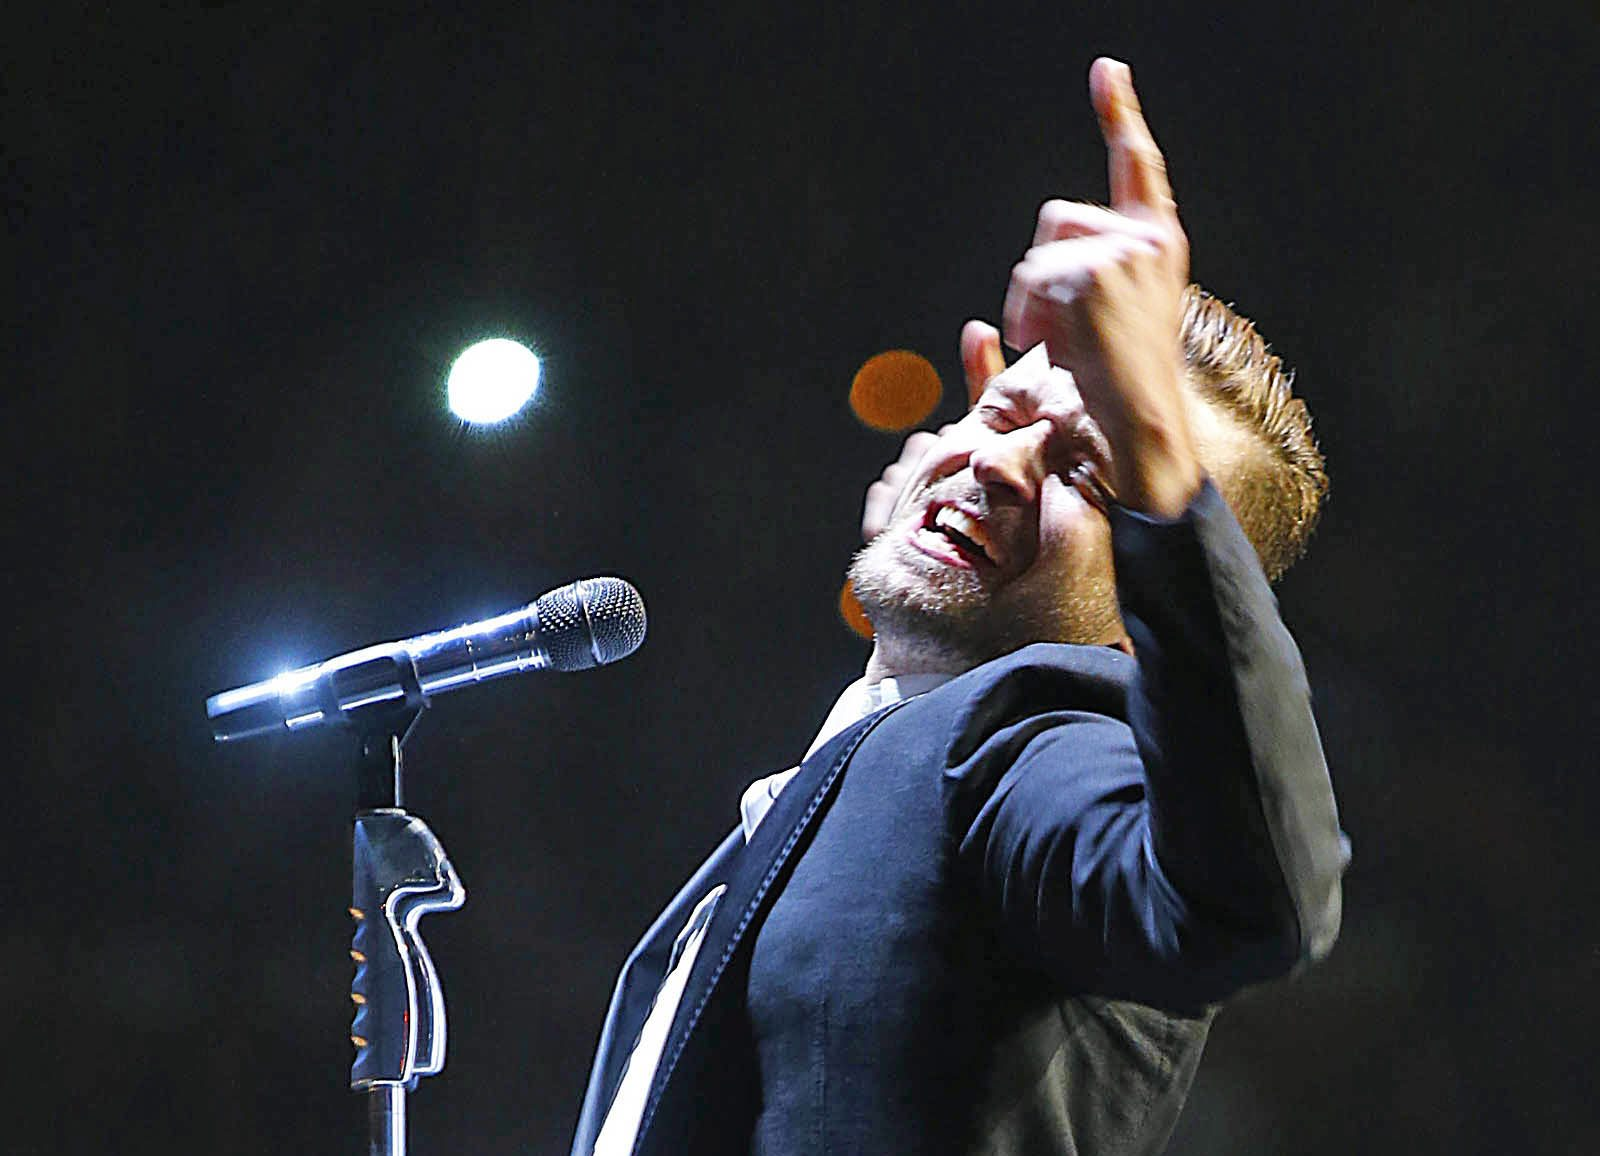 Justin Timberlake has traveled to Western New York to perform plenty of times, but did he really get a flat tire in Lockport recently? Not a chance. (Robert Kirkham/Buffalo News)